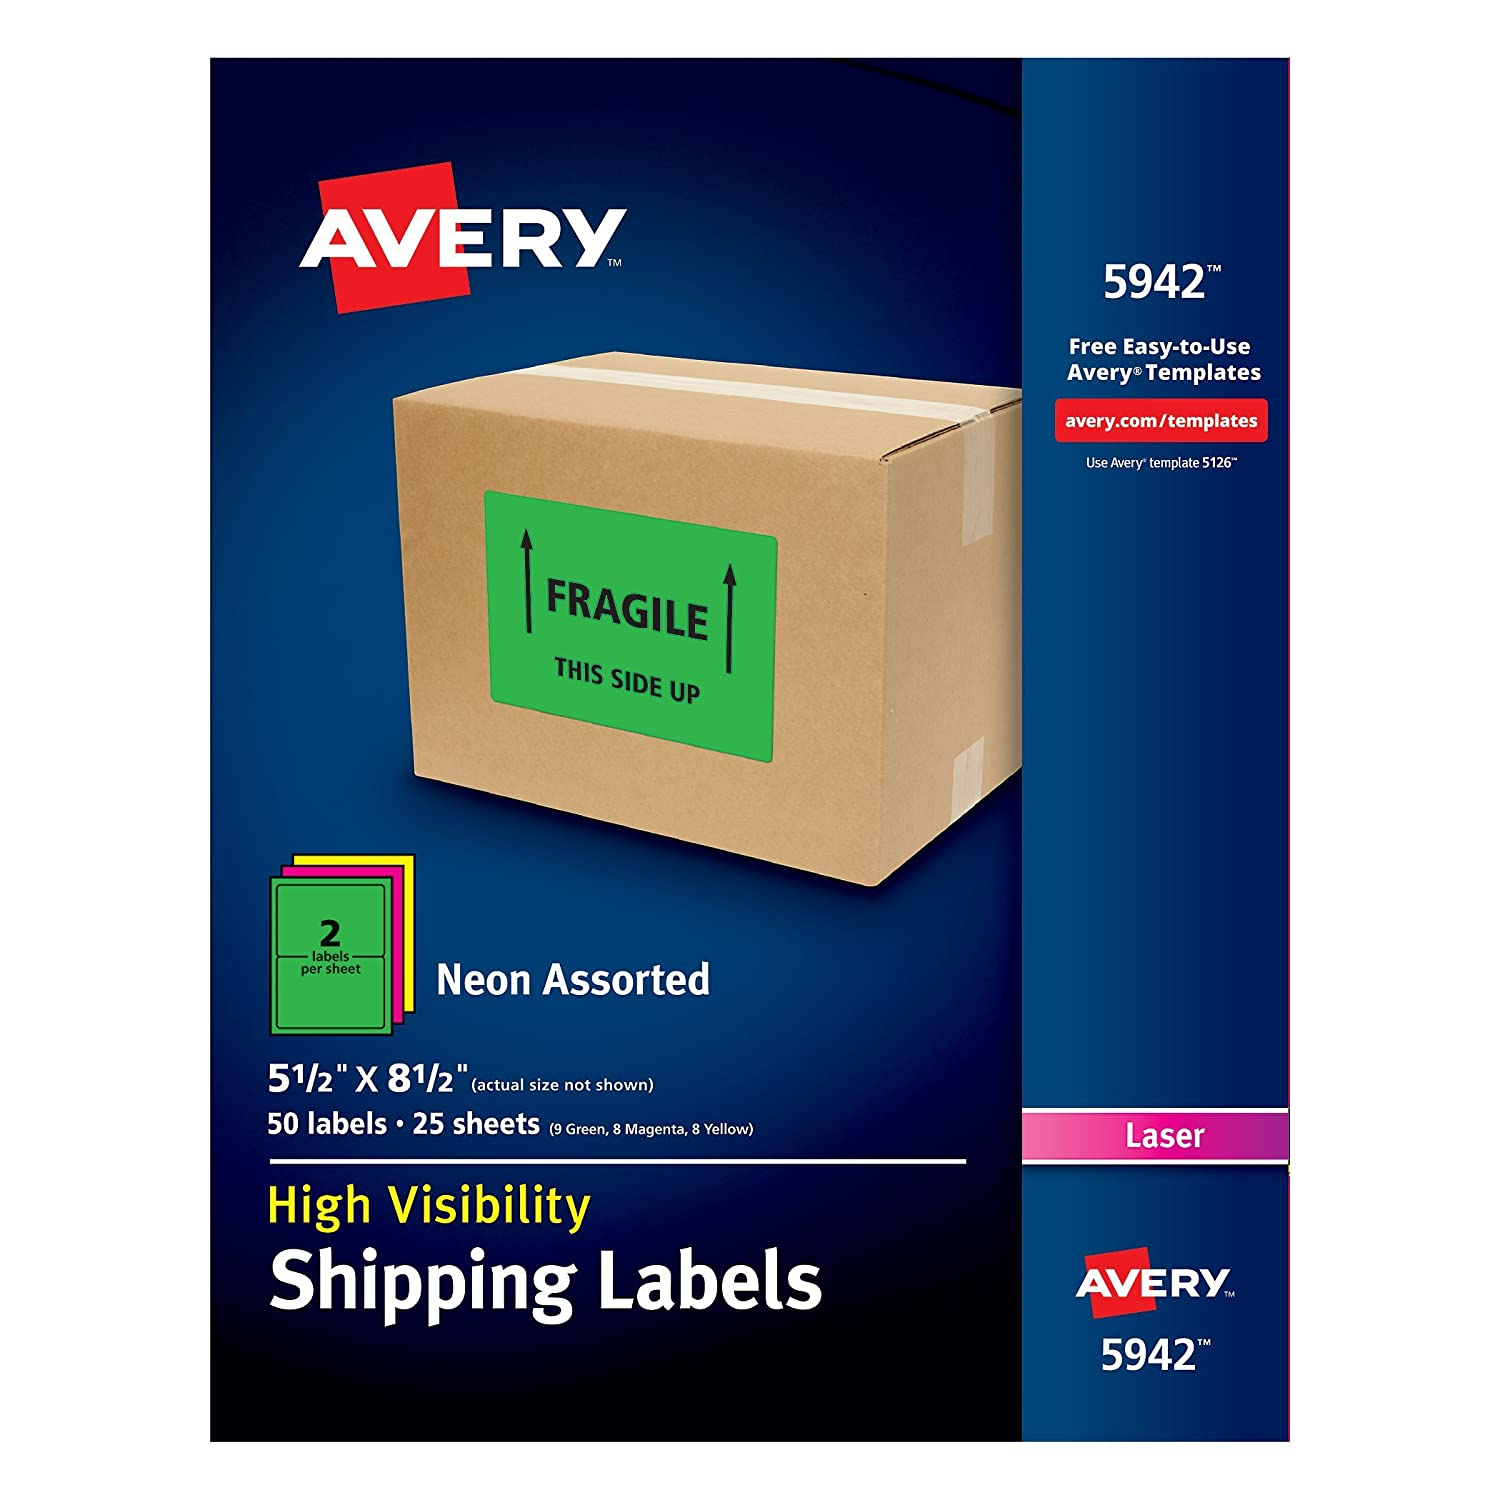 Avery High-Visibility Neon Shipping Labels for Laser Printers Assorted Colors, 5-1/2 x 8-1/2, Pack of 200 (5946) 5-1/2 x 8-1/2 Avery Products Corporation 05946